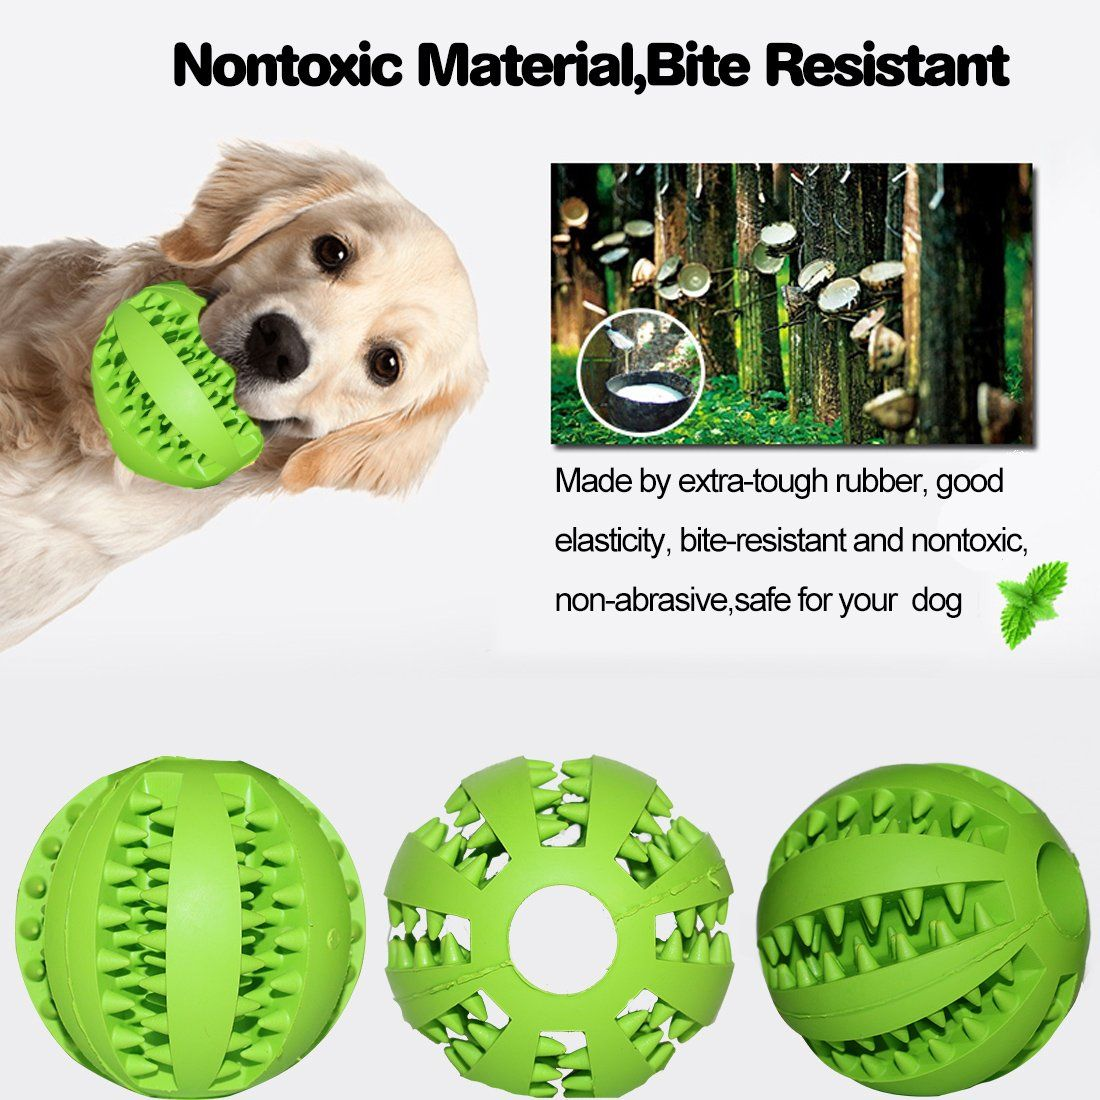 Idepet Dog Toy Ball Nontoxic Bite Resistant Toy Ball For Pet Dogs Puppy Cat Dog Pet Food Treat Feeder Chew Tooth Cleaning Ba Funny Dog Toys Interactive Dog Toys